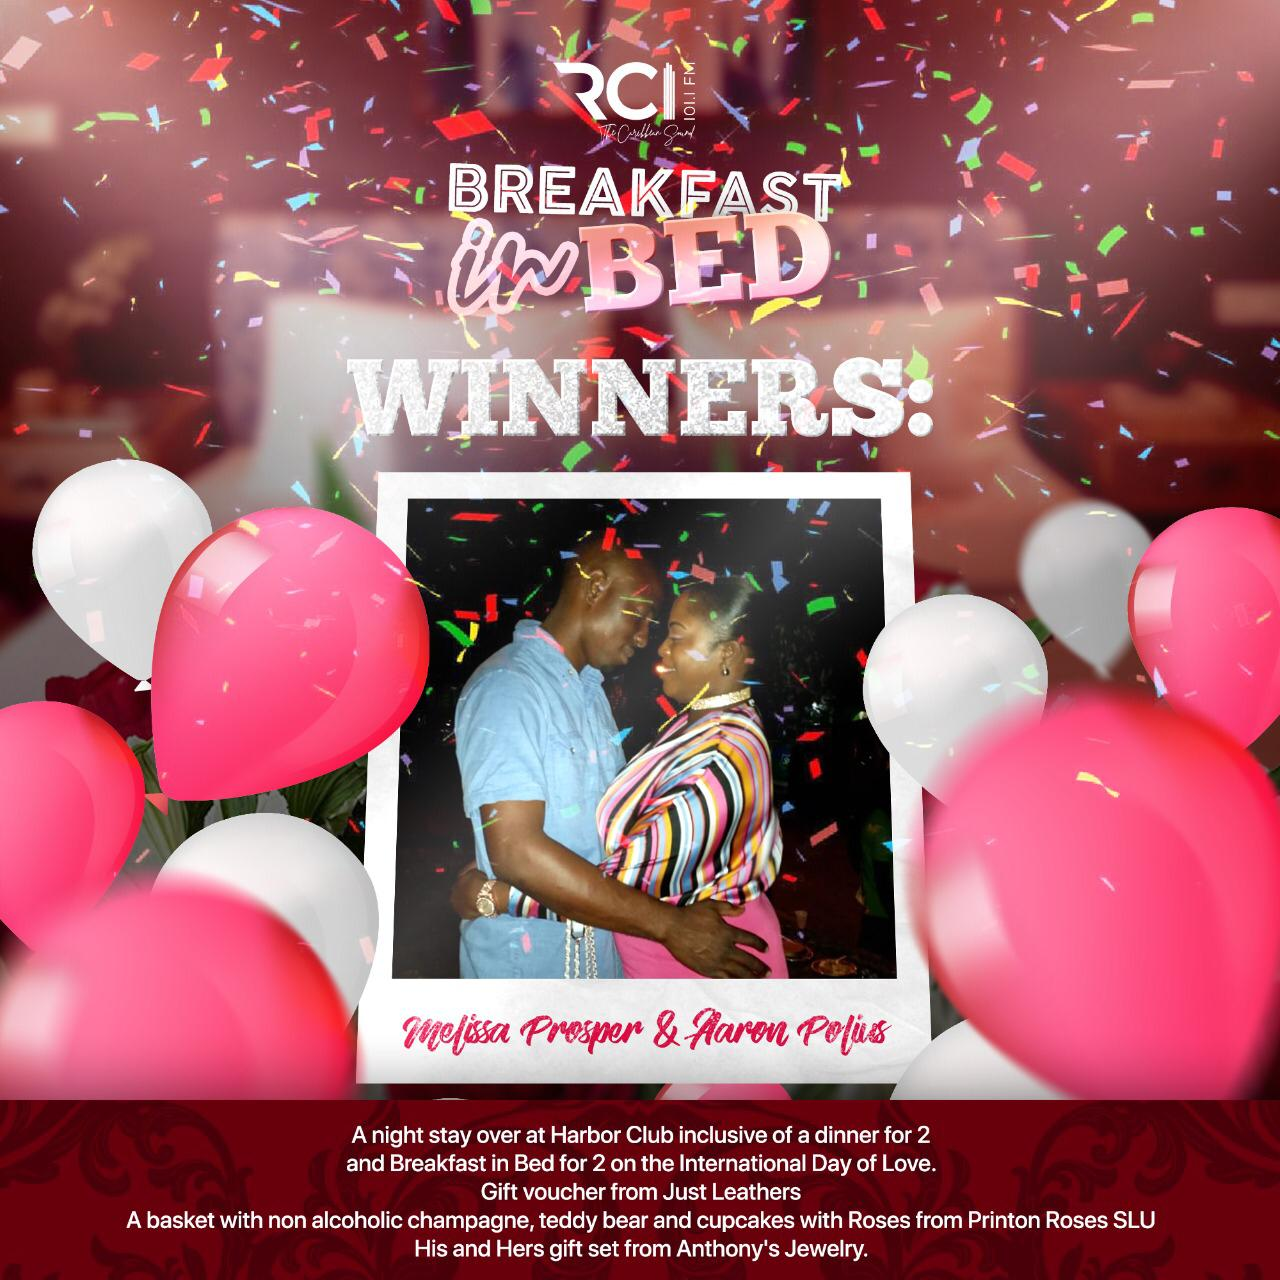 RCI - Breakfast In Bed Winners